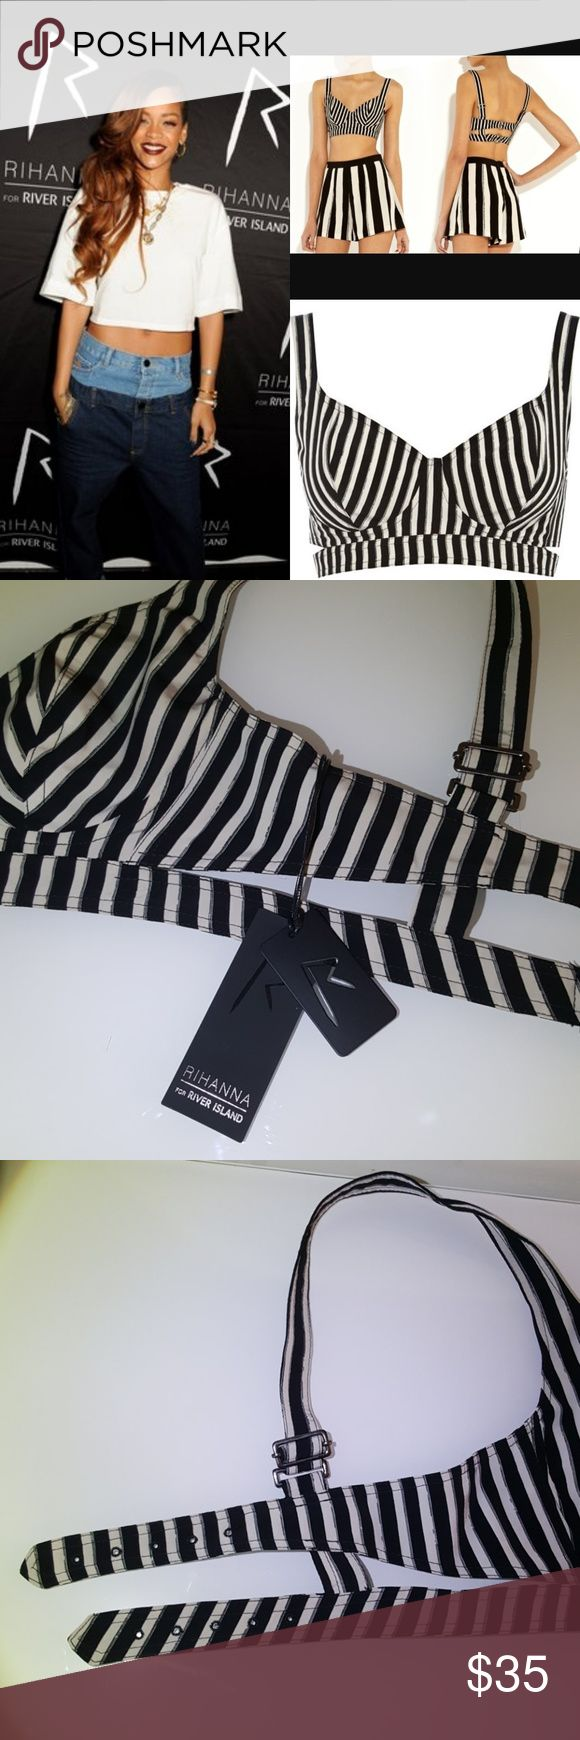 RIHANNA for River Island bustier New with tags Size 8 USA  Size 34 EURO Shoulder straps fully adjustable Bust adjustable 5 times,  approx 26-30 inches around Rare find!!! Rihanna for River Island Tops